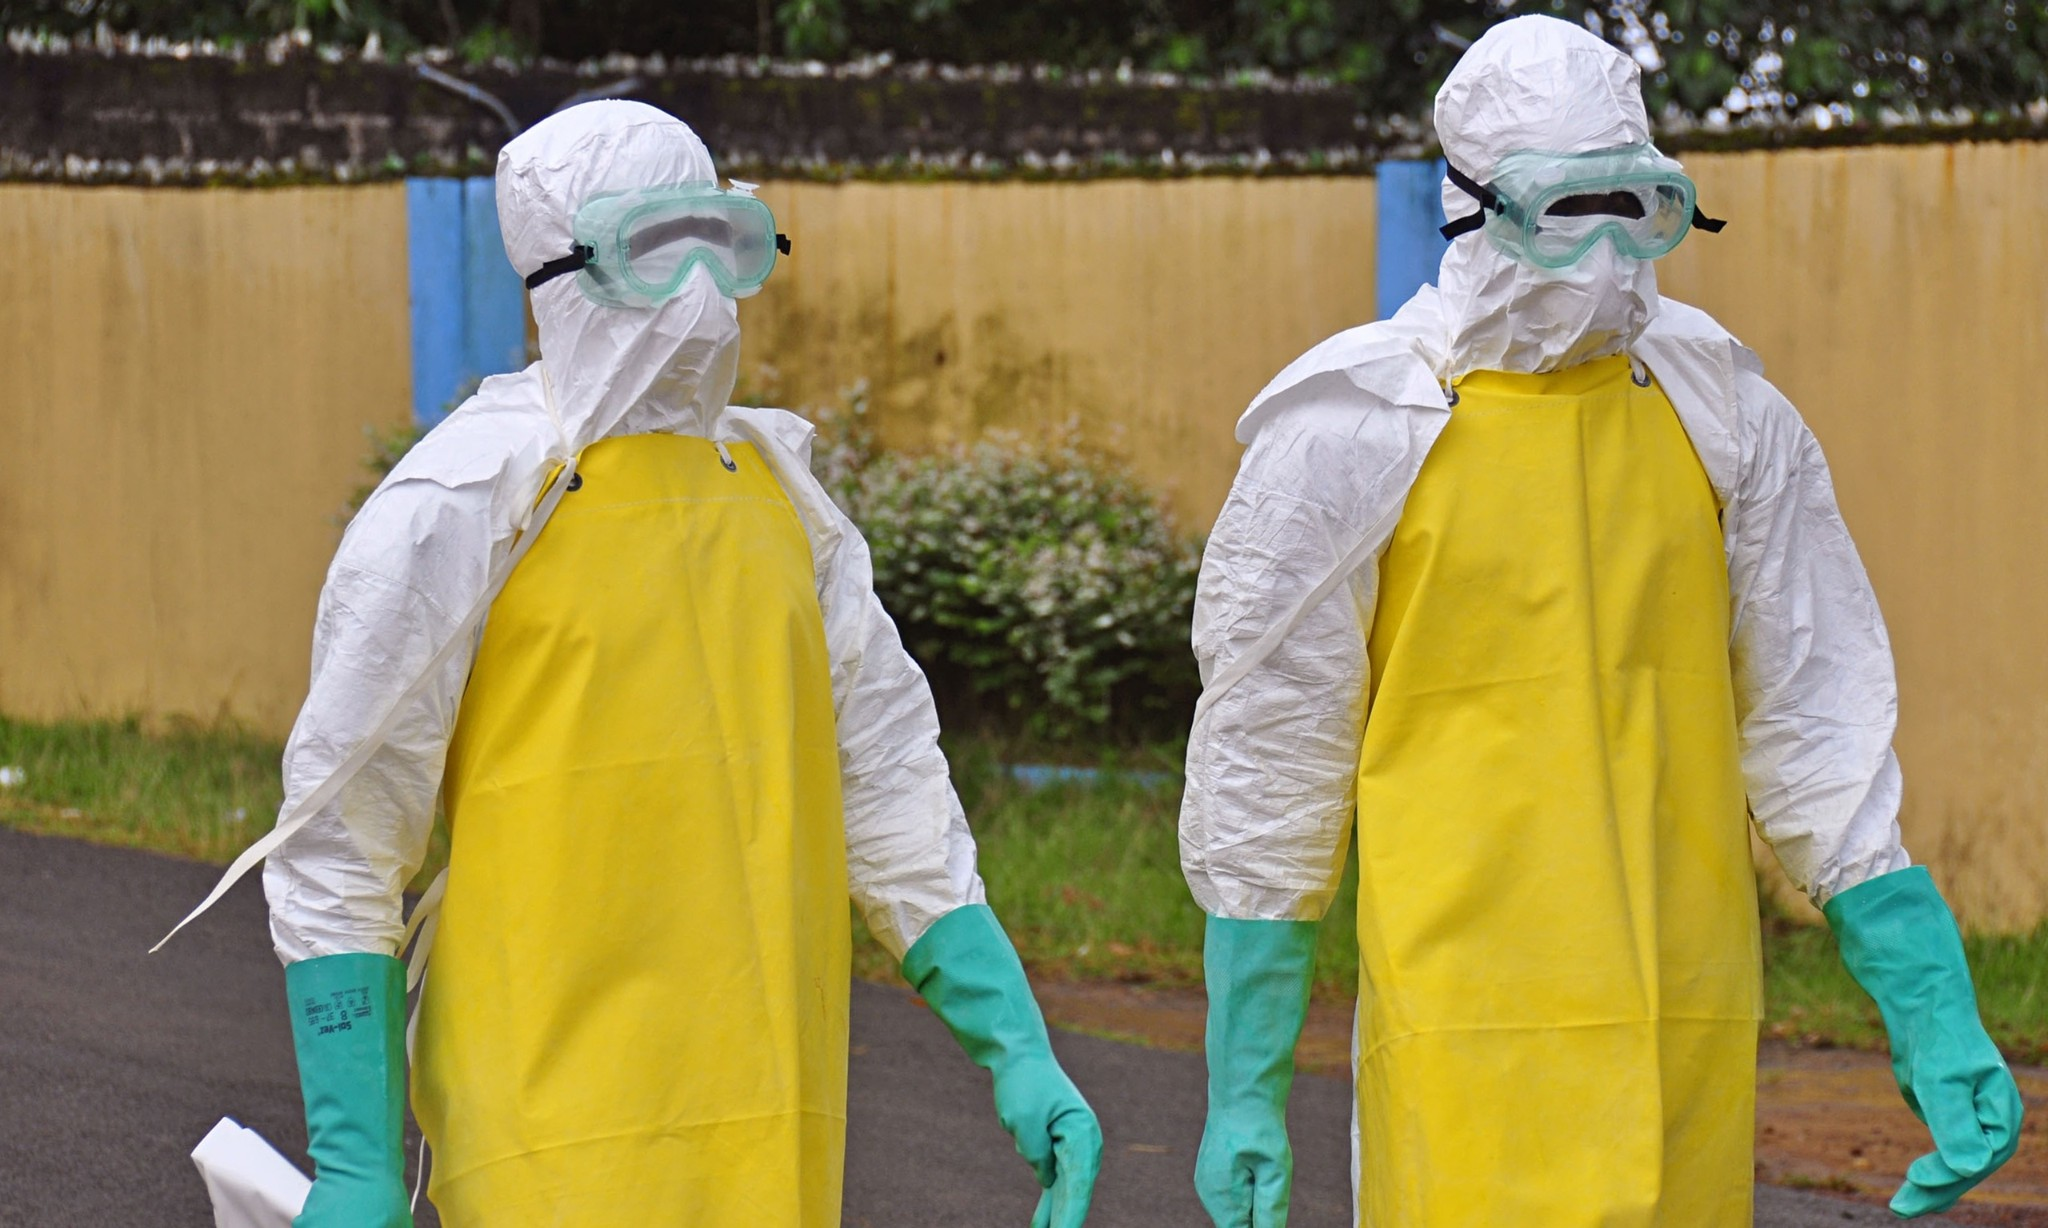 Ebola: life and death on the frontline